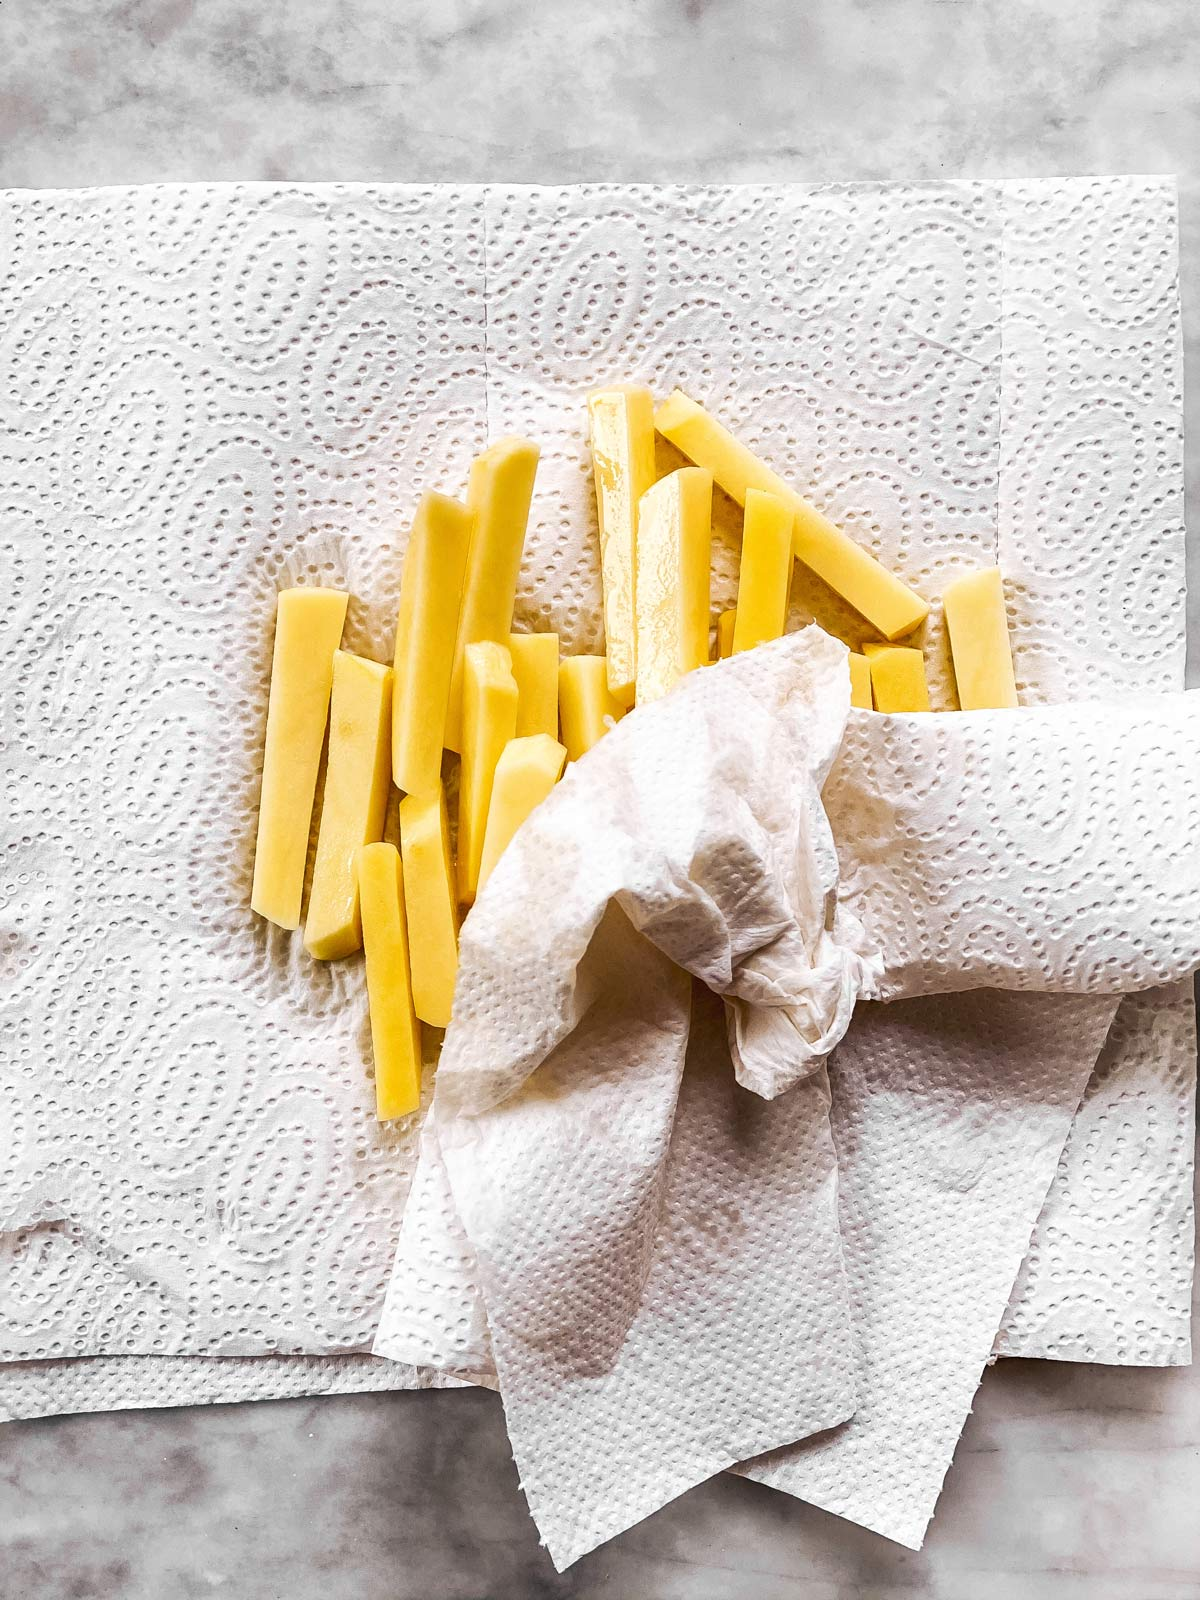 raw French fries on paper towels